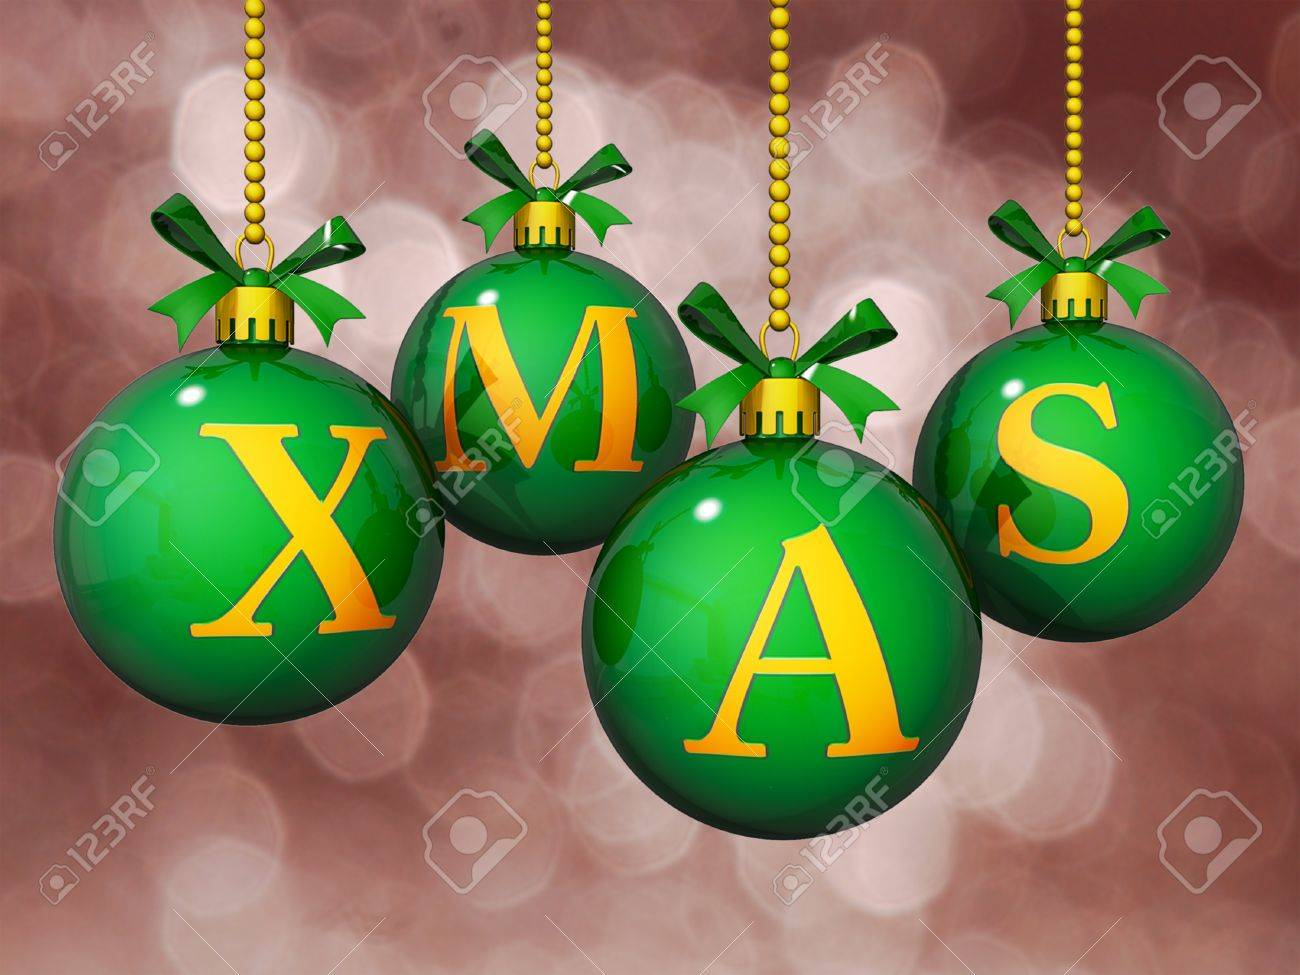 Ornaments with Xmas written on them in front of a Bokeh Background. Stock Photo - 17572084